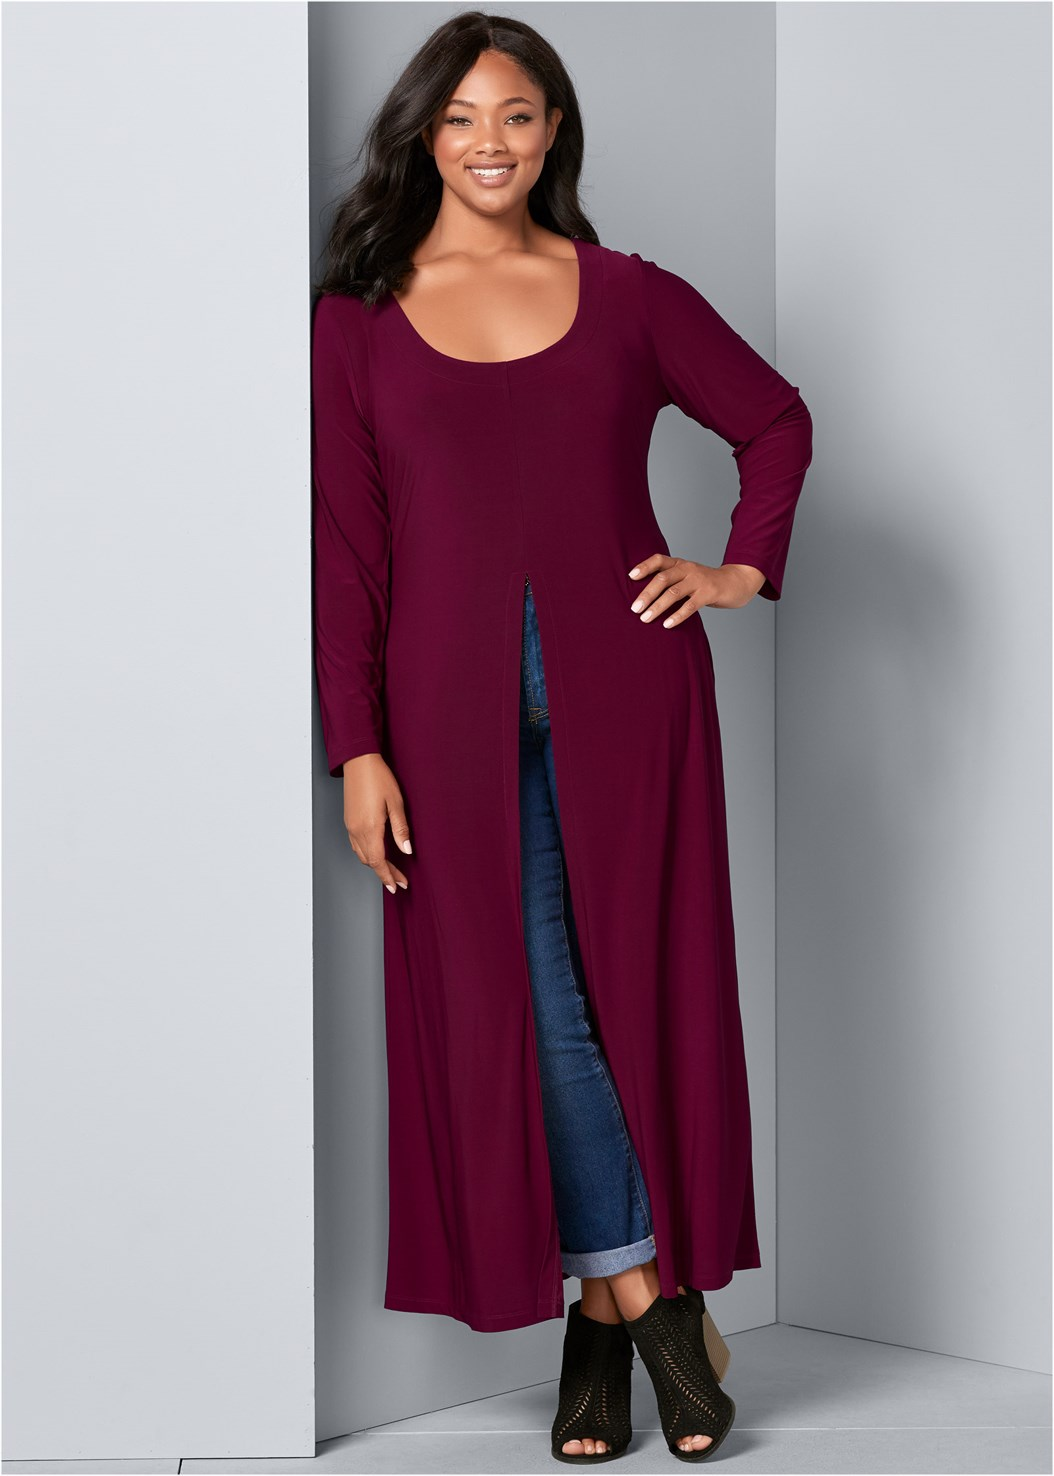 Maxi Top,Mid Rise Color Skinny Jeans